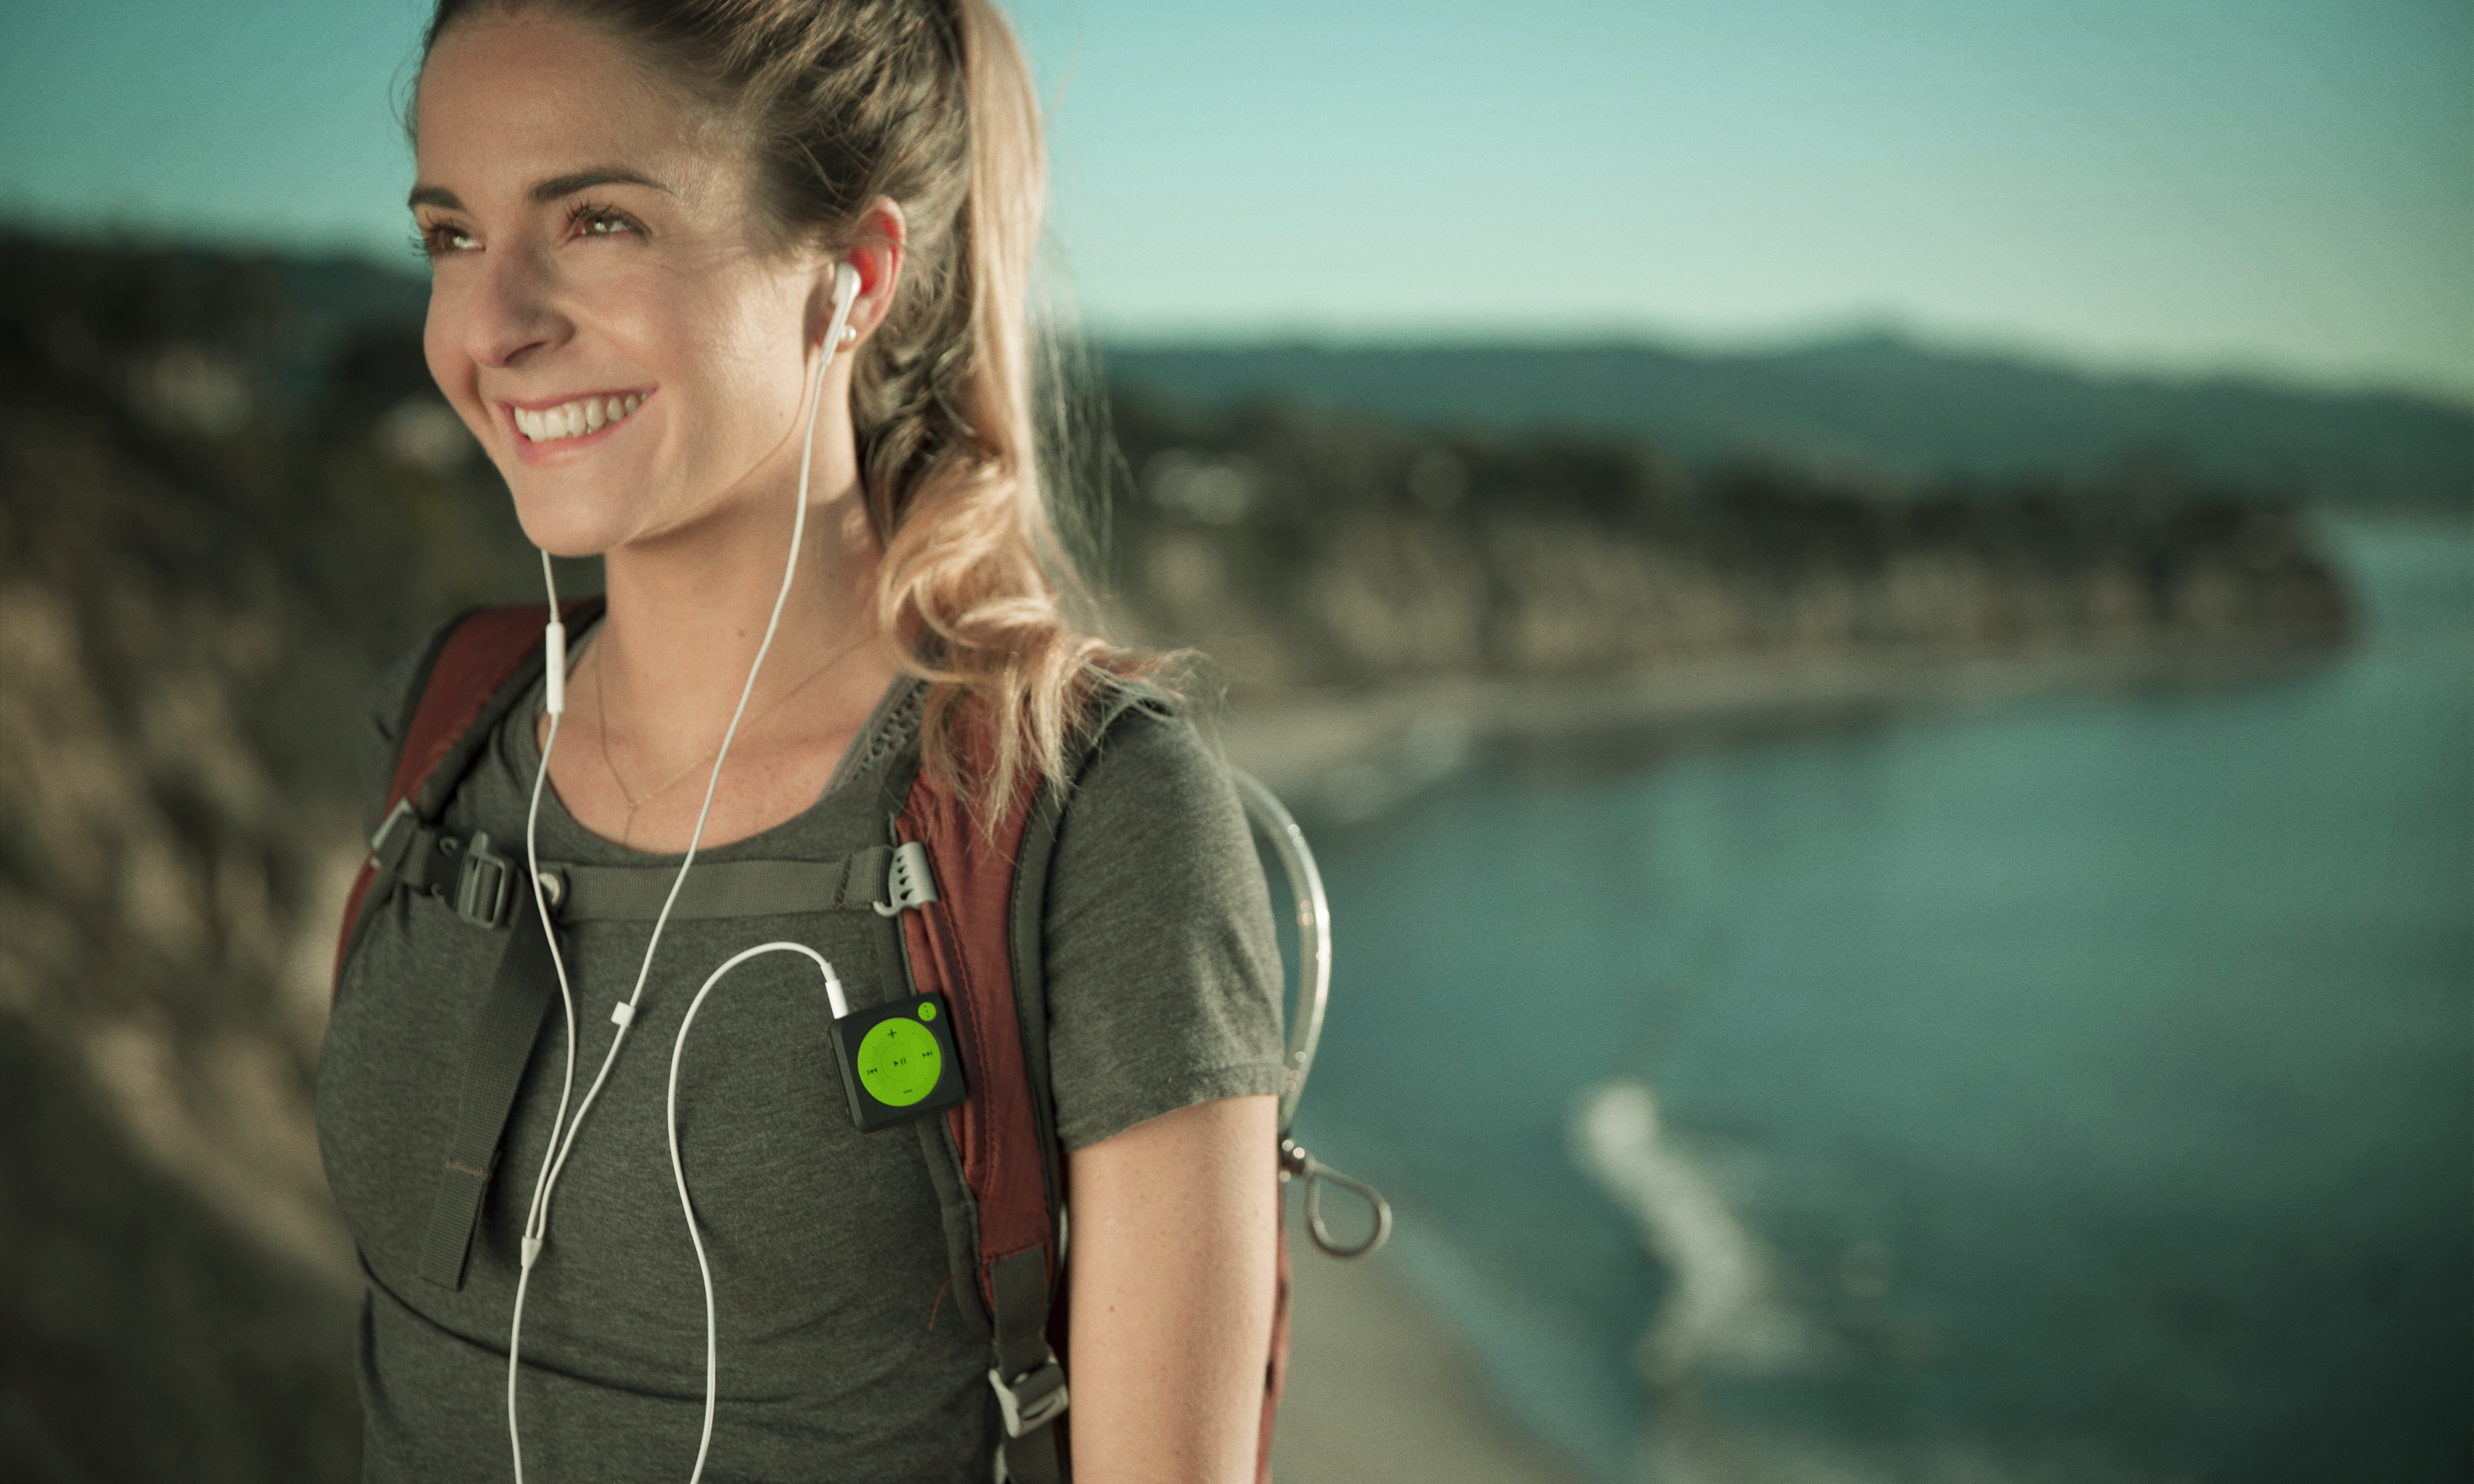 Mighty: Listening to Workout Music Just Got Way Easier